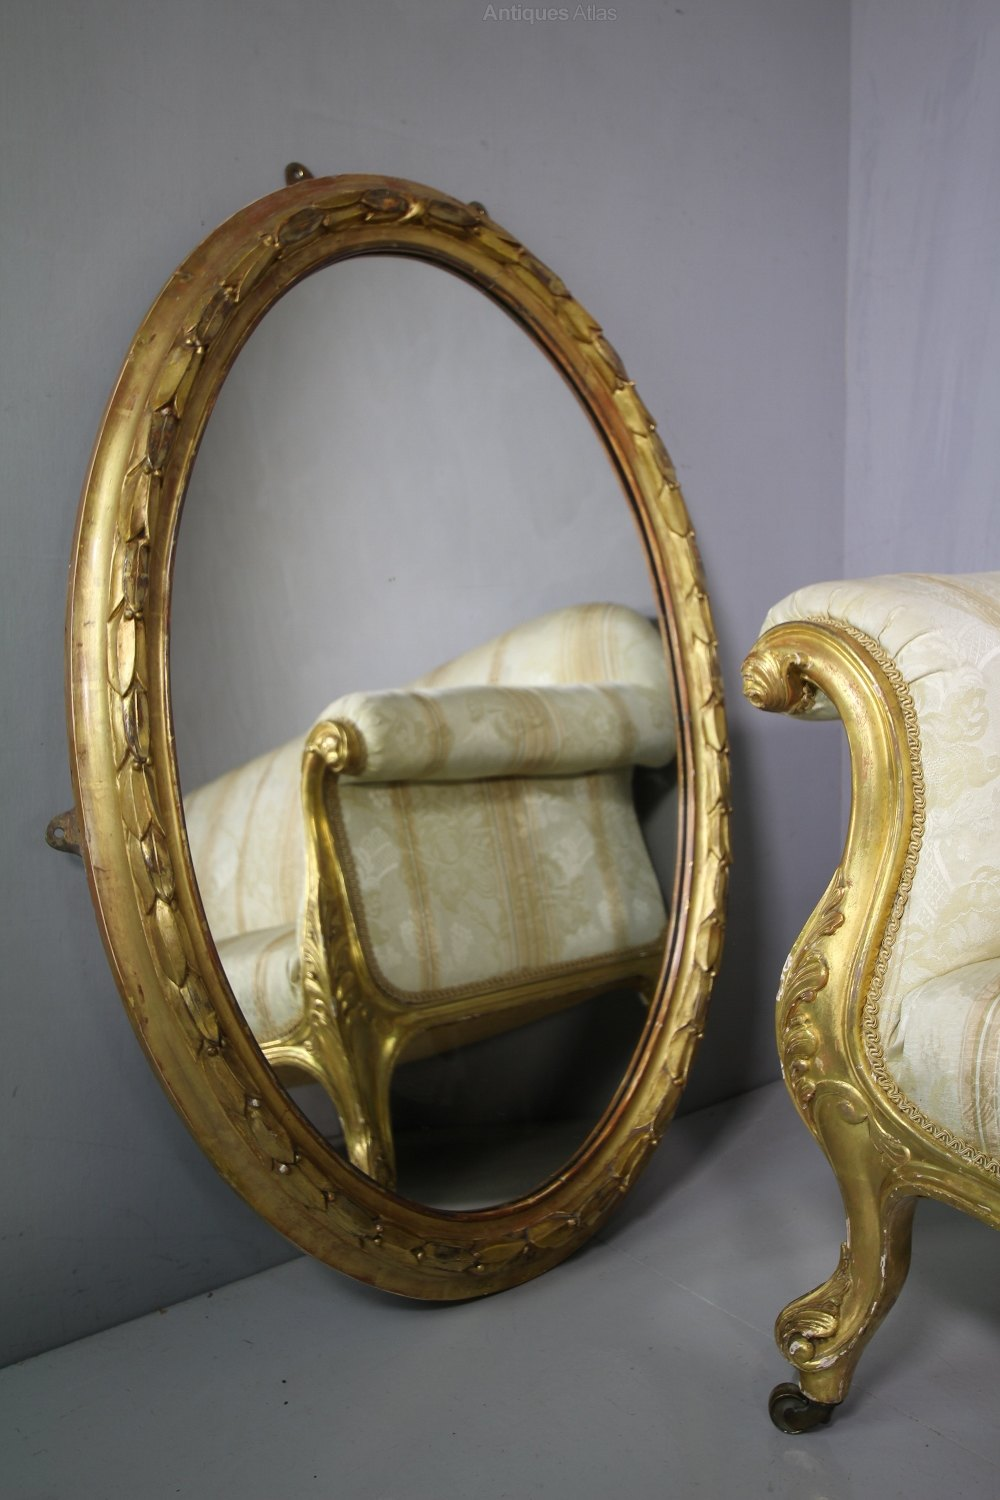 Antiques Atlas Beautiful 19th Century Antique Gilt Oval